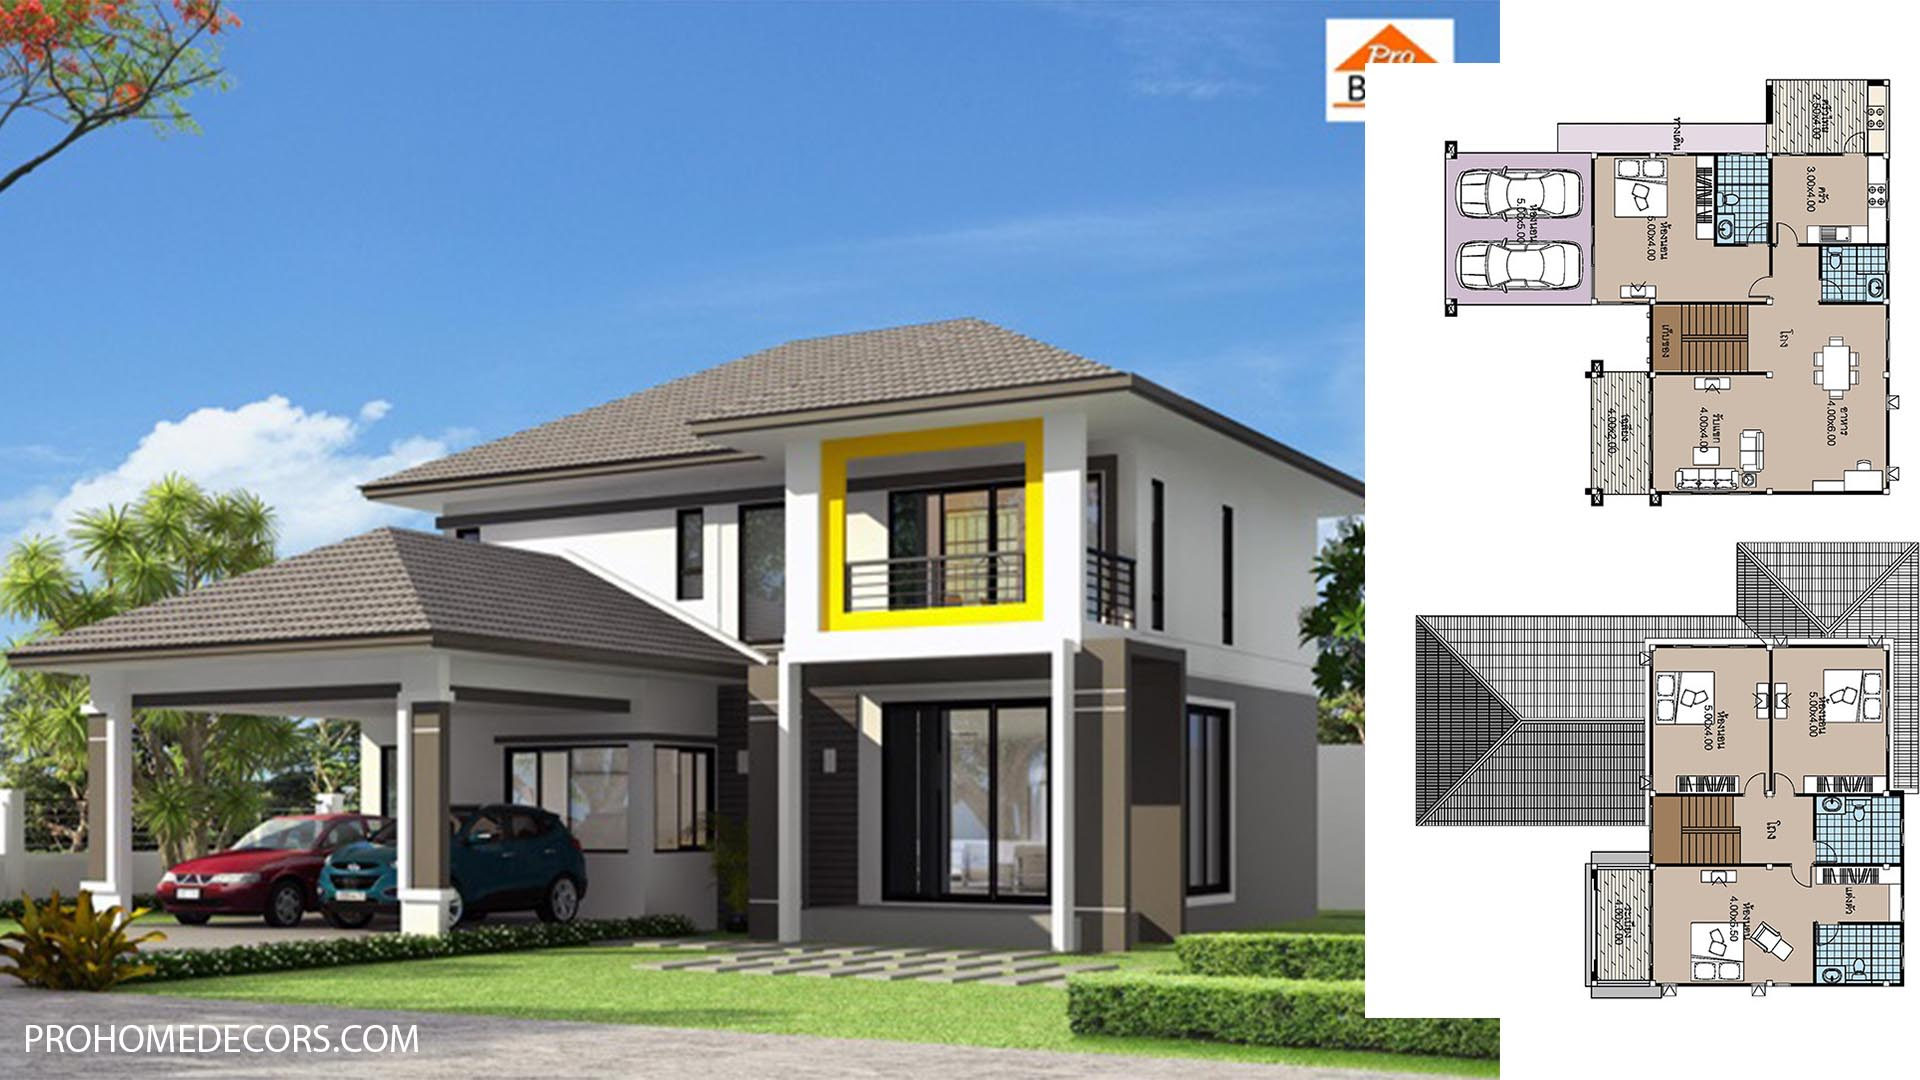 House plans 14×15 with 4 Beds